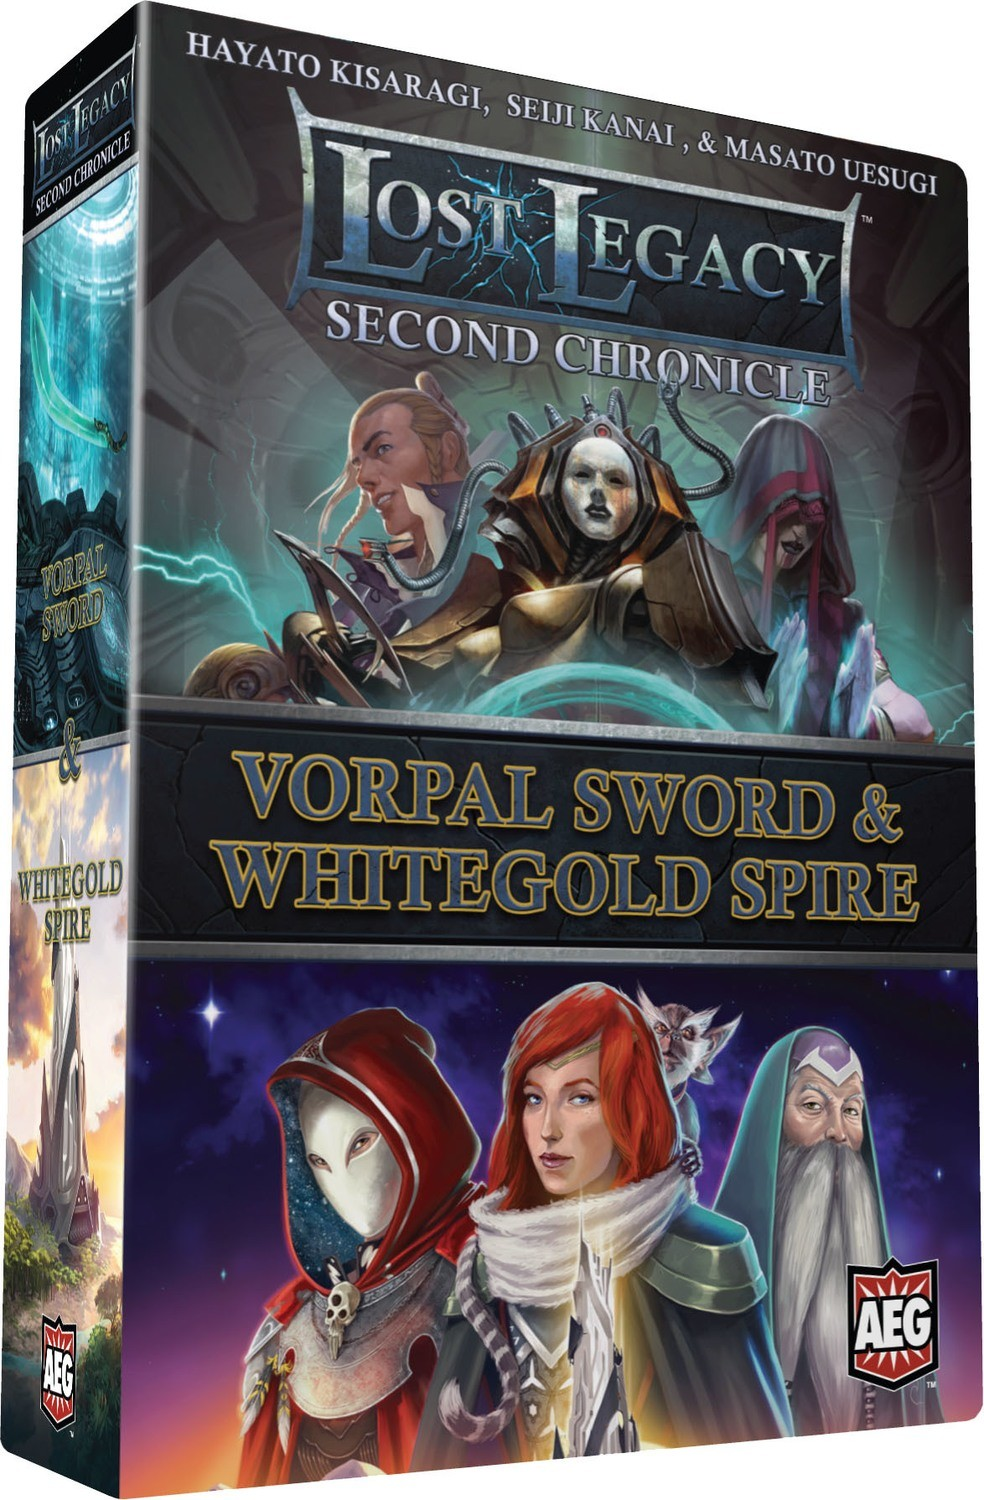 Lost Legacy: Second Chronicle: Vorpal Sword & Whitegold Spire